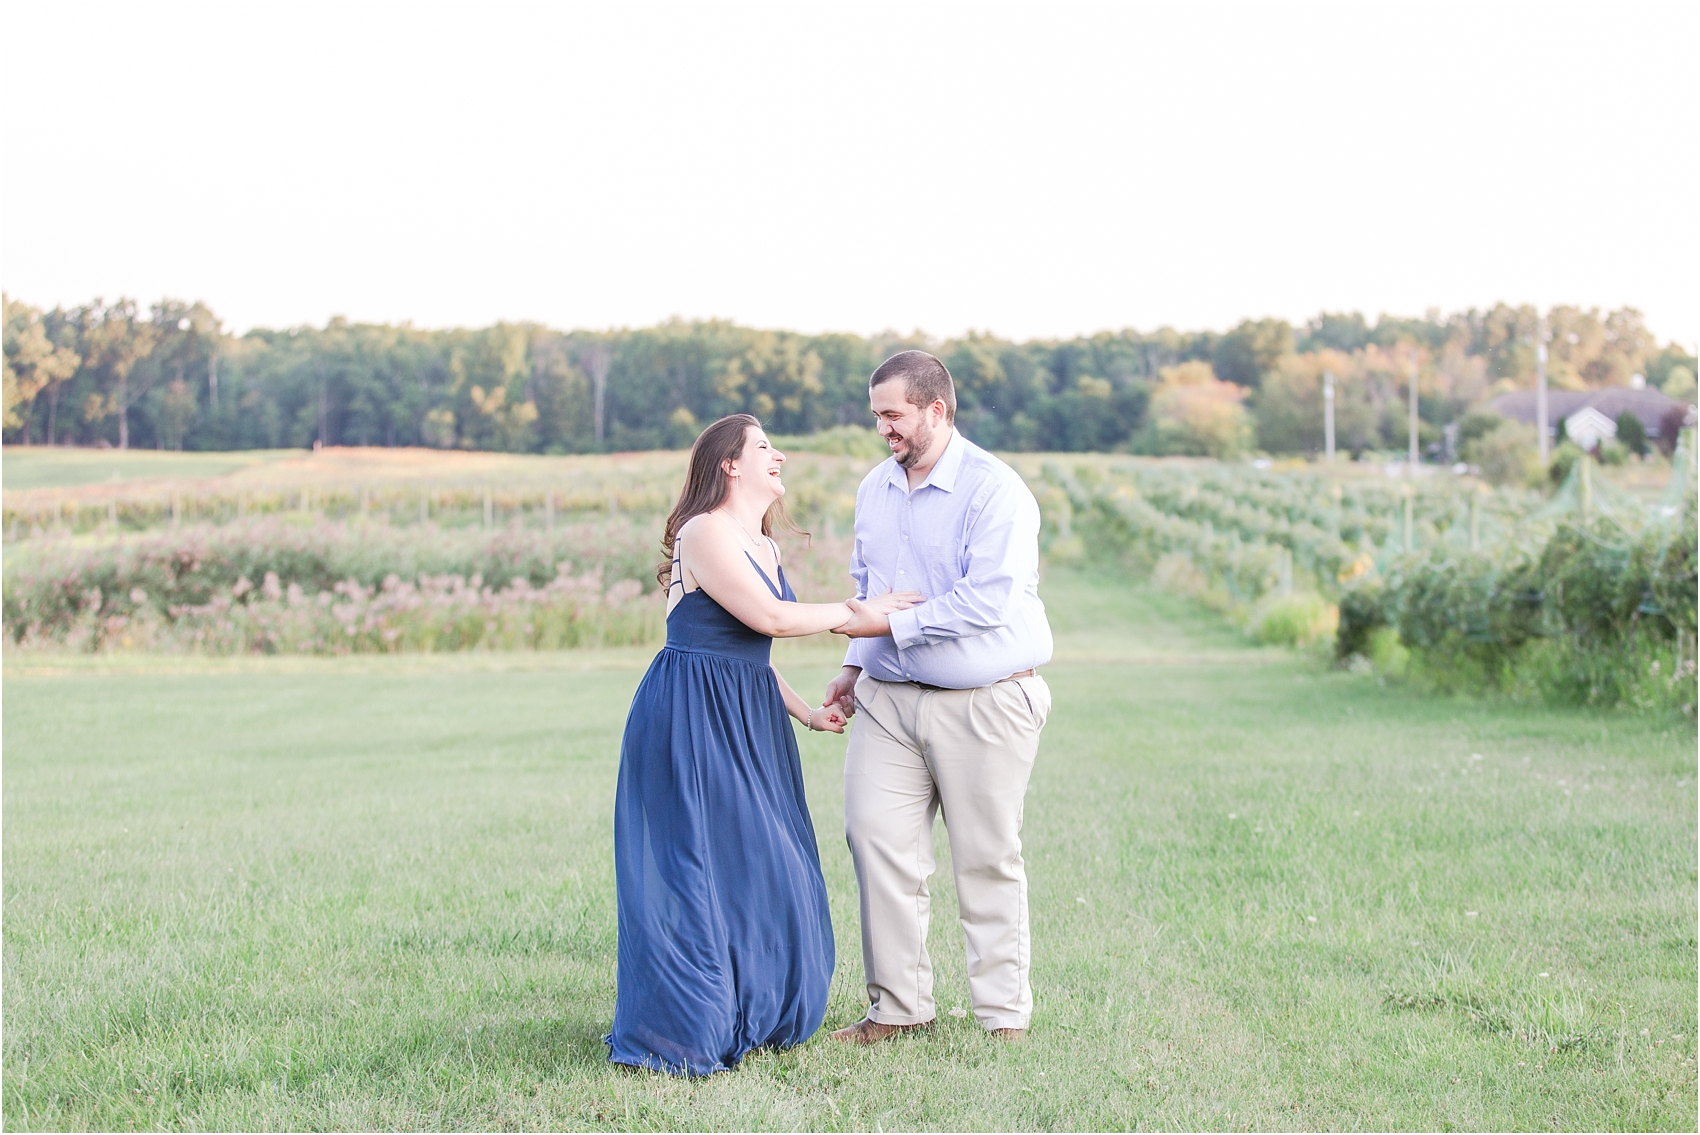 candid-romantic-summer-engagement-photos-at-hidden-lake-gardens-and-black-fire-winery-in-tipton-mi-by-courtney-carolyn-photography_0006.jpg